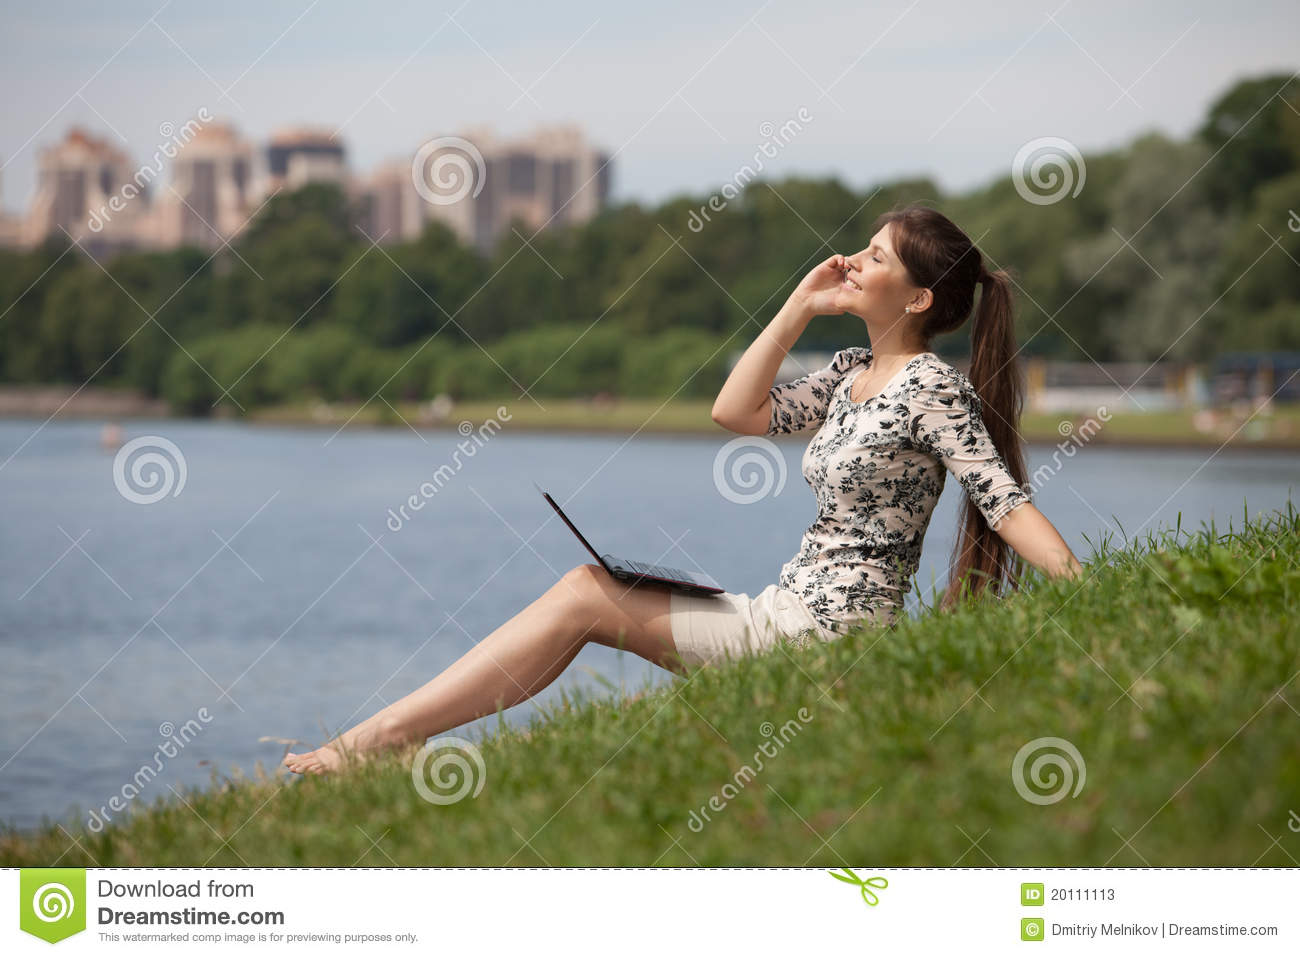 Young woman with laptop and mobile phone in park.